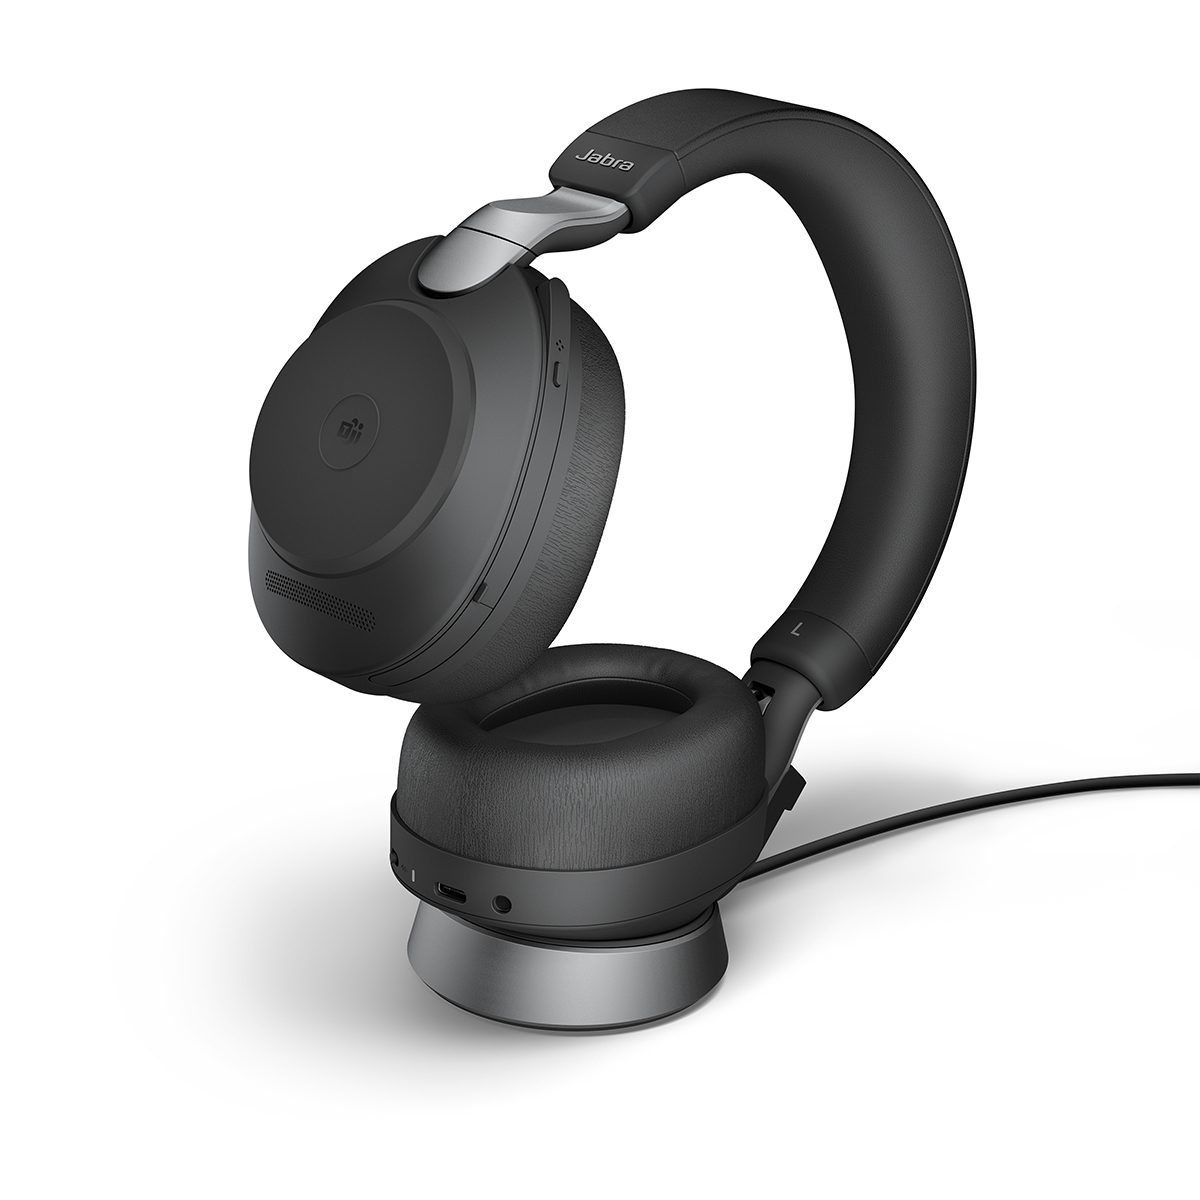 Jabra Evolve2 85 USB-C UC Stereo Headset and Charging Stand